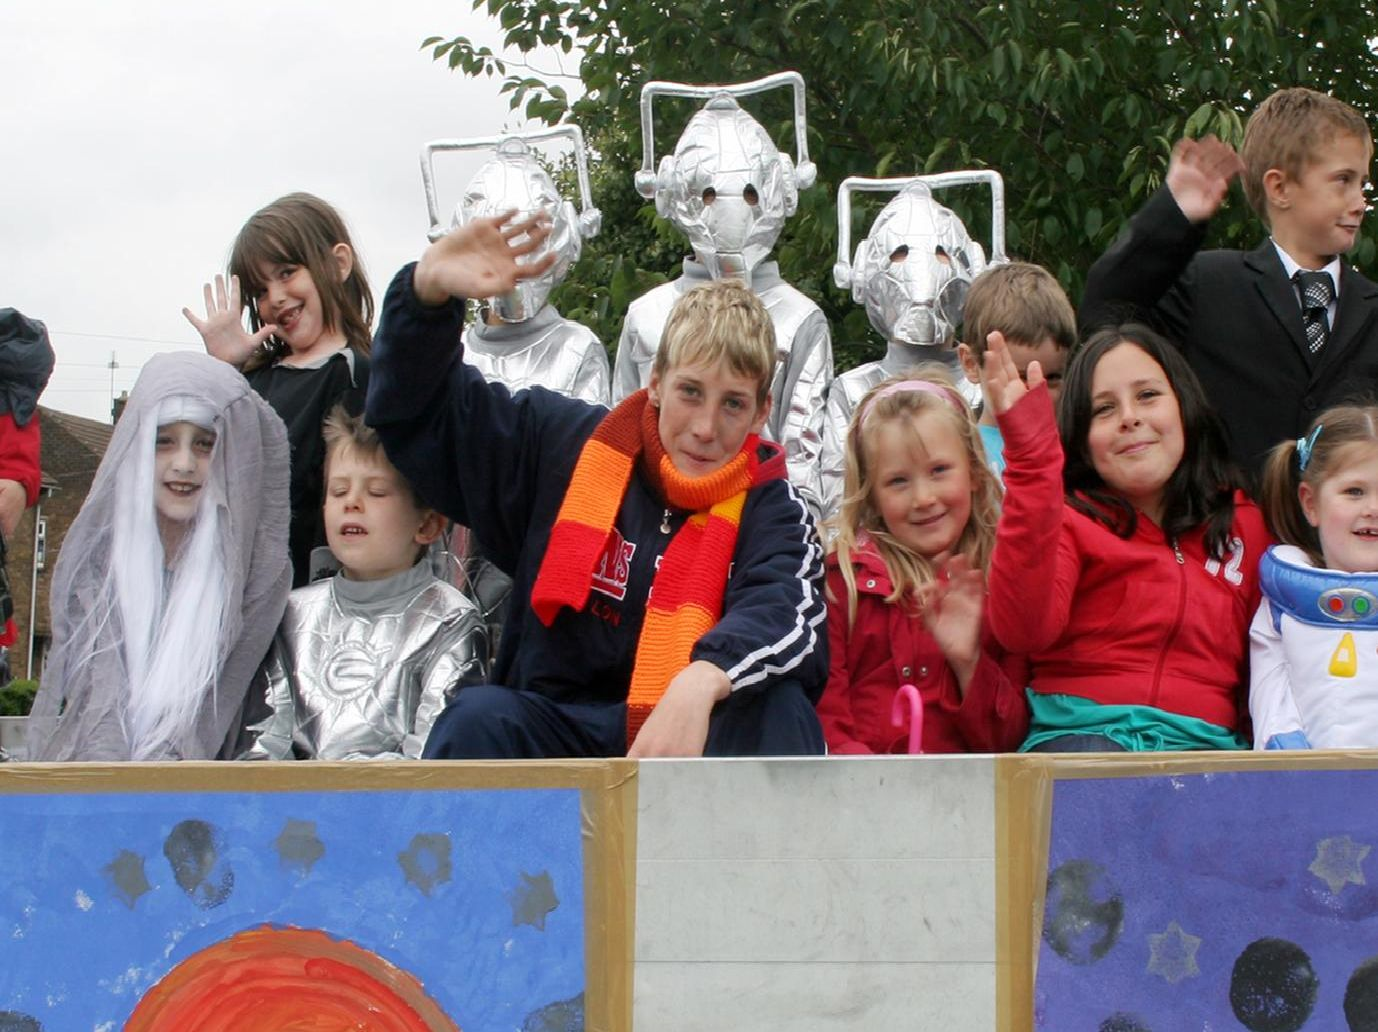 Tupton Primary School pupils on the Dr Who float at Tupton Carnival in 2007.